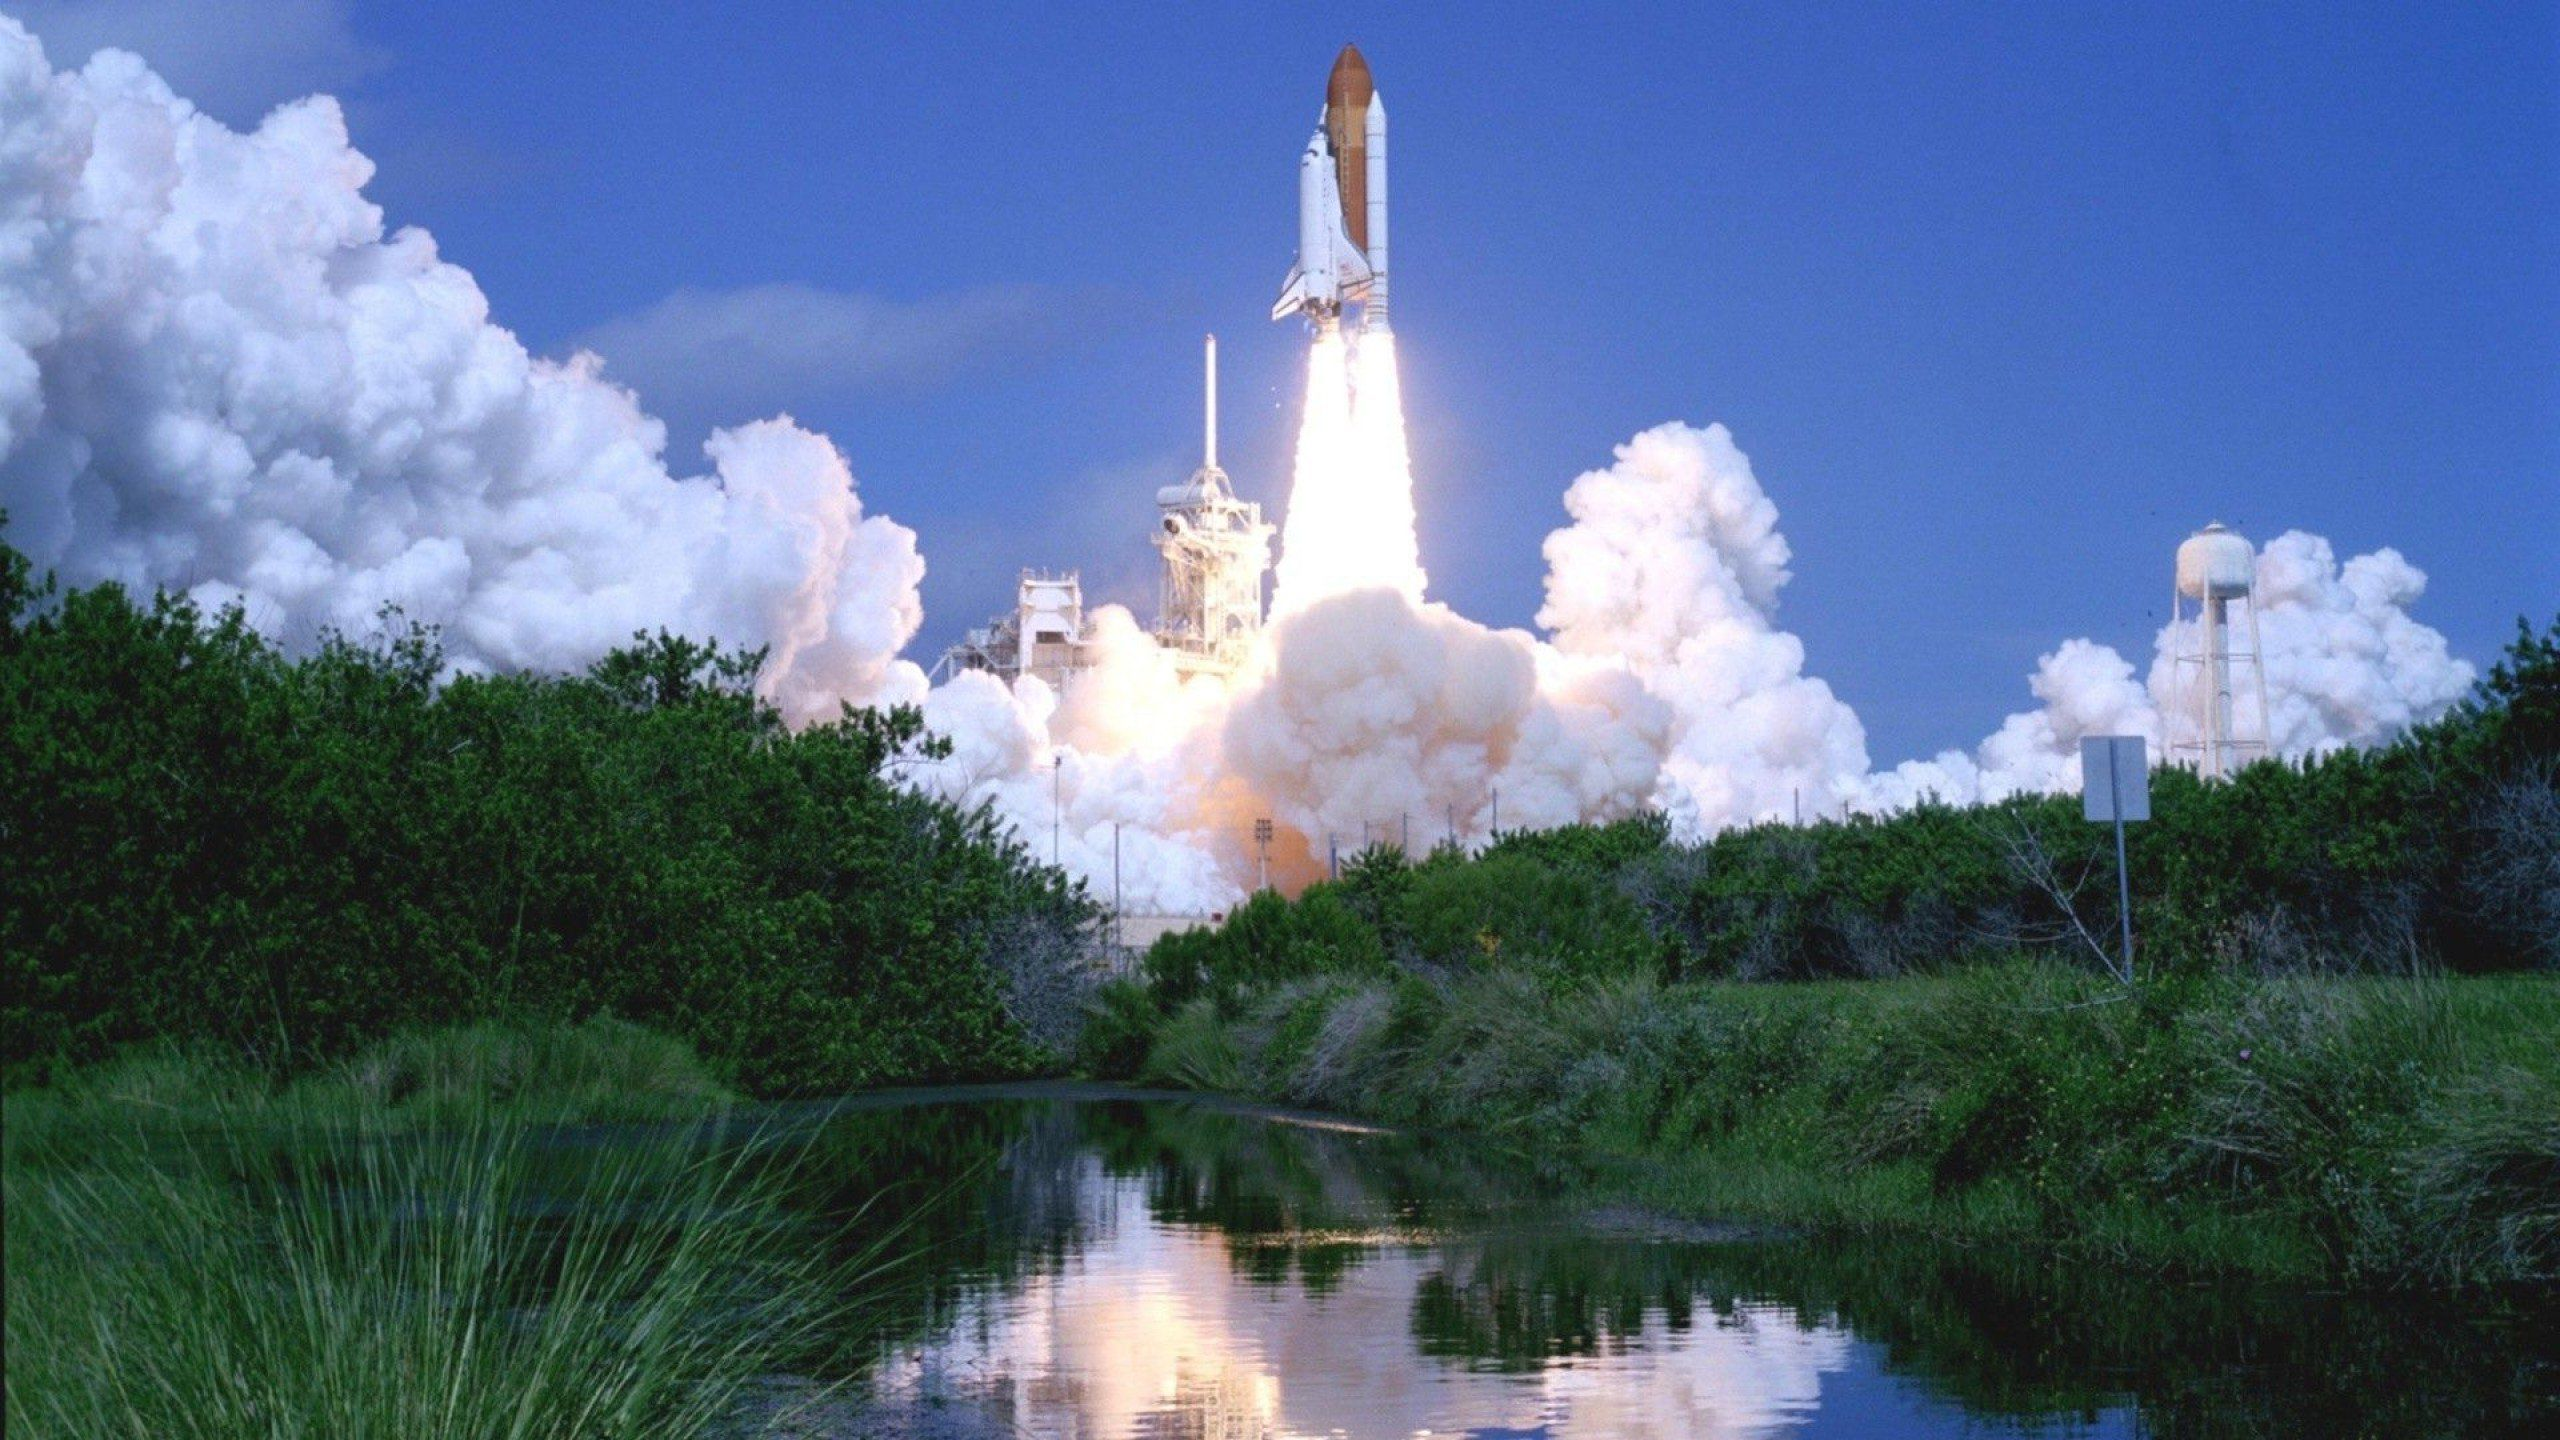 space-shuttle-wallpaper-launch-atlantis-wallpapers